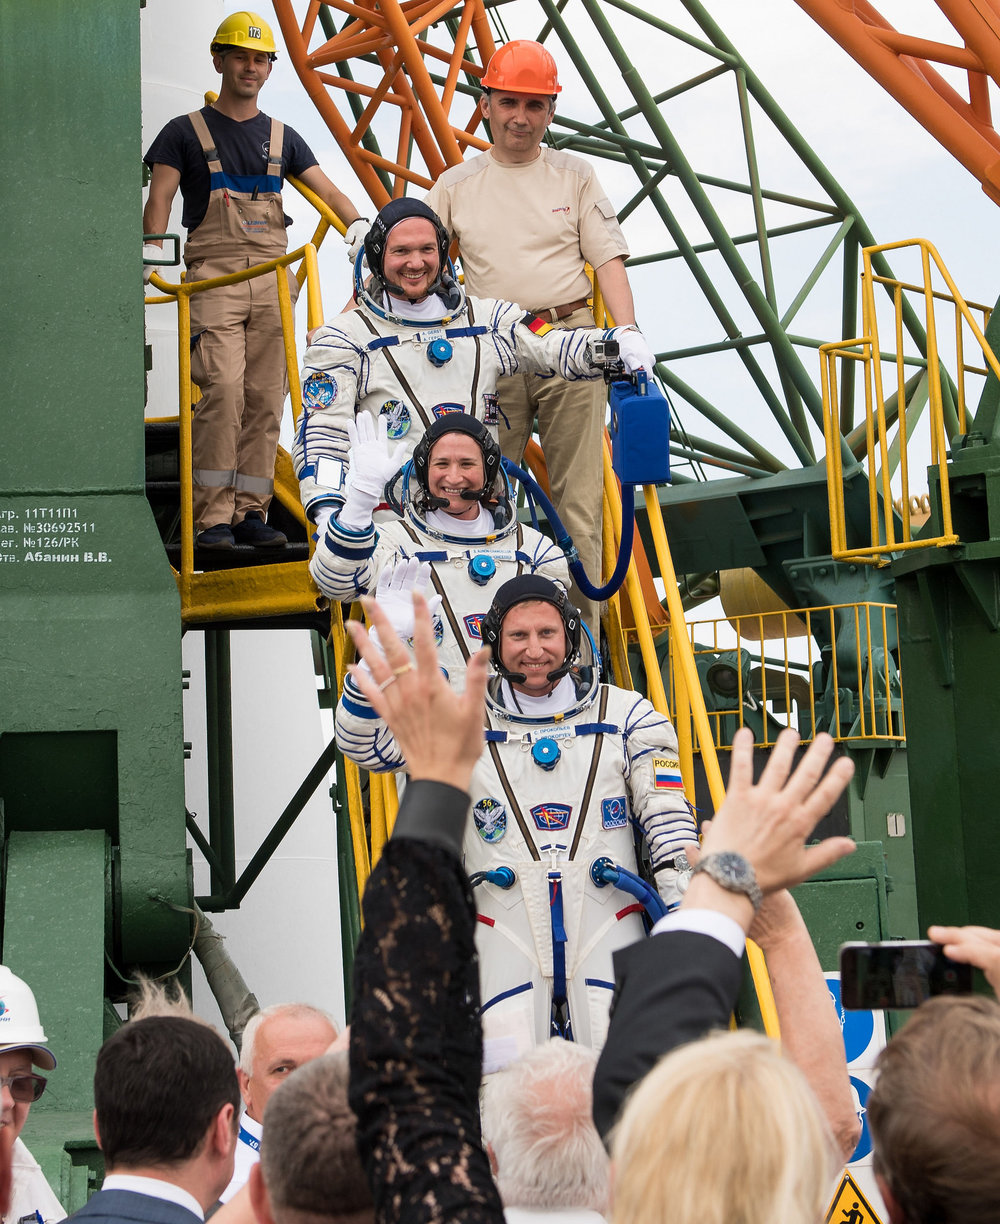 Alexander Gerst of ESA, top, Serena Auñón-Chancellor of NASA, middle, and Soyuz Commander Sergey Prokopyev of Roscosmos wave farewell before boarding the Soyuz MS-09 spacecraft for launch. Credit: Joel Kowsky / NASA